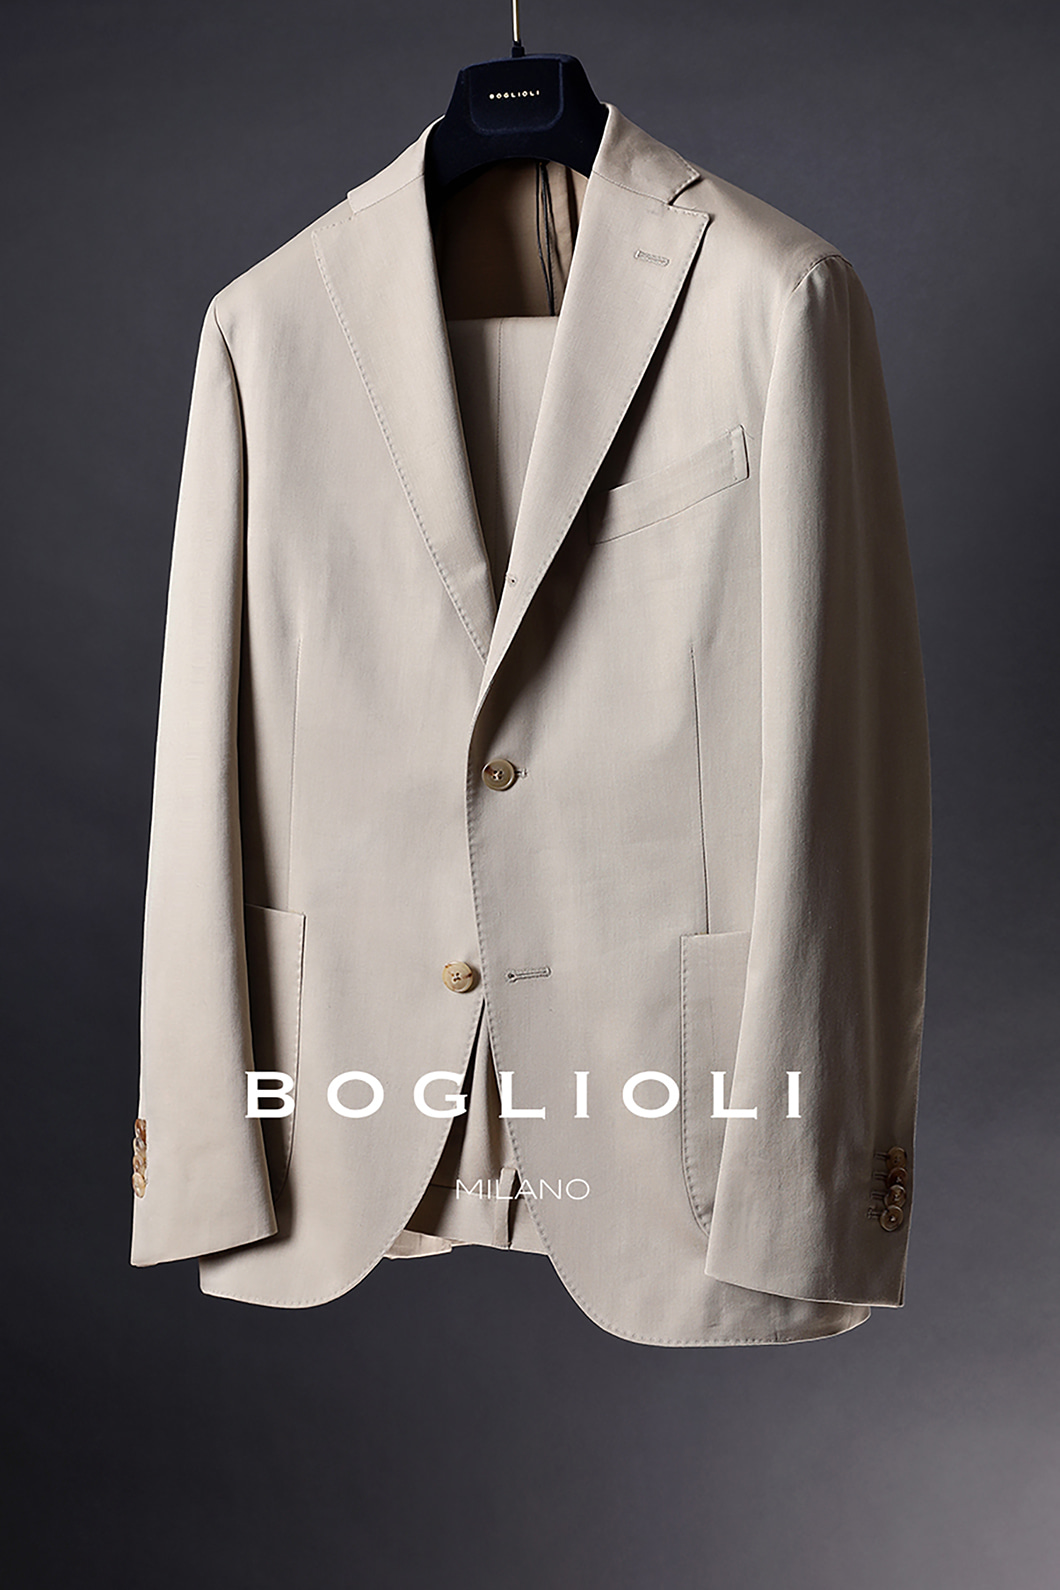 BOGLIOLI SINGLE FORMAL SUIT-BEIGE